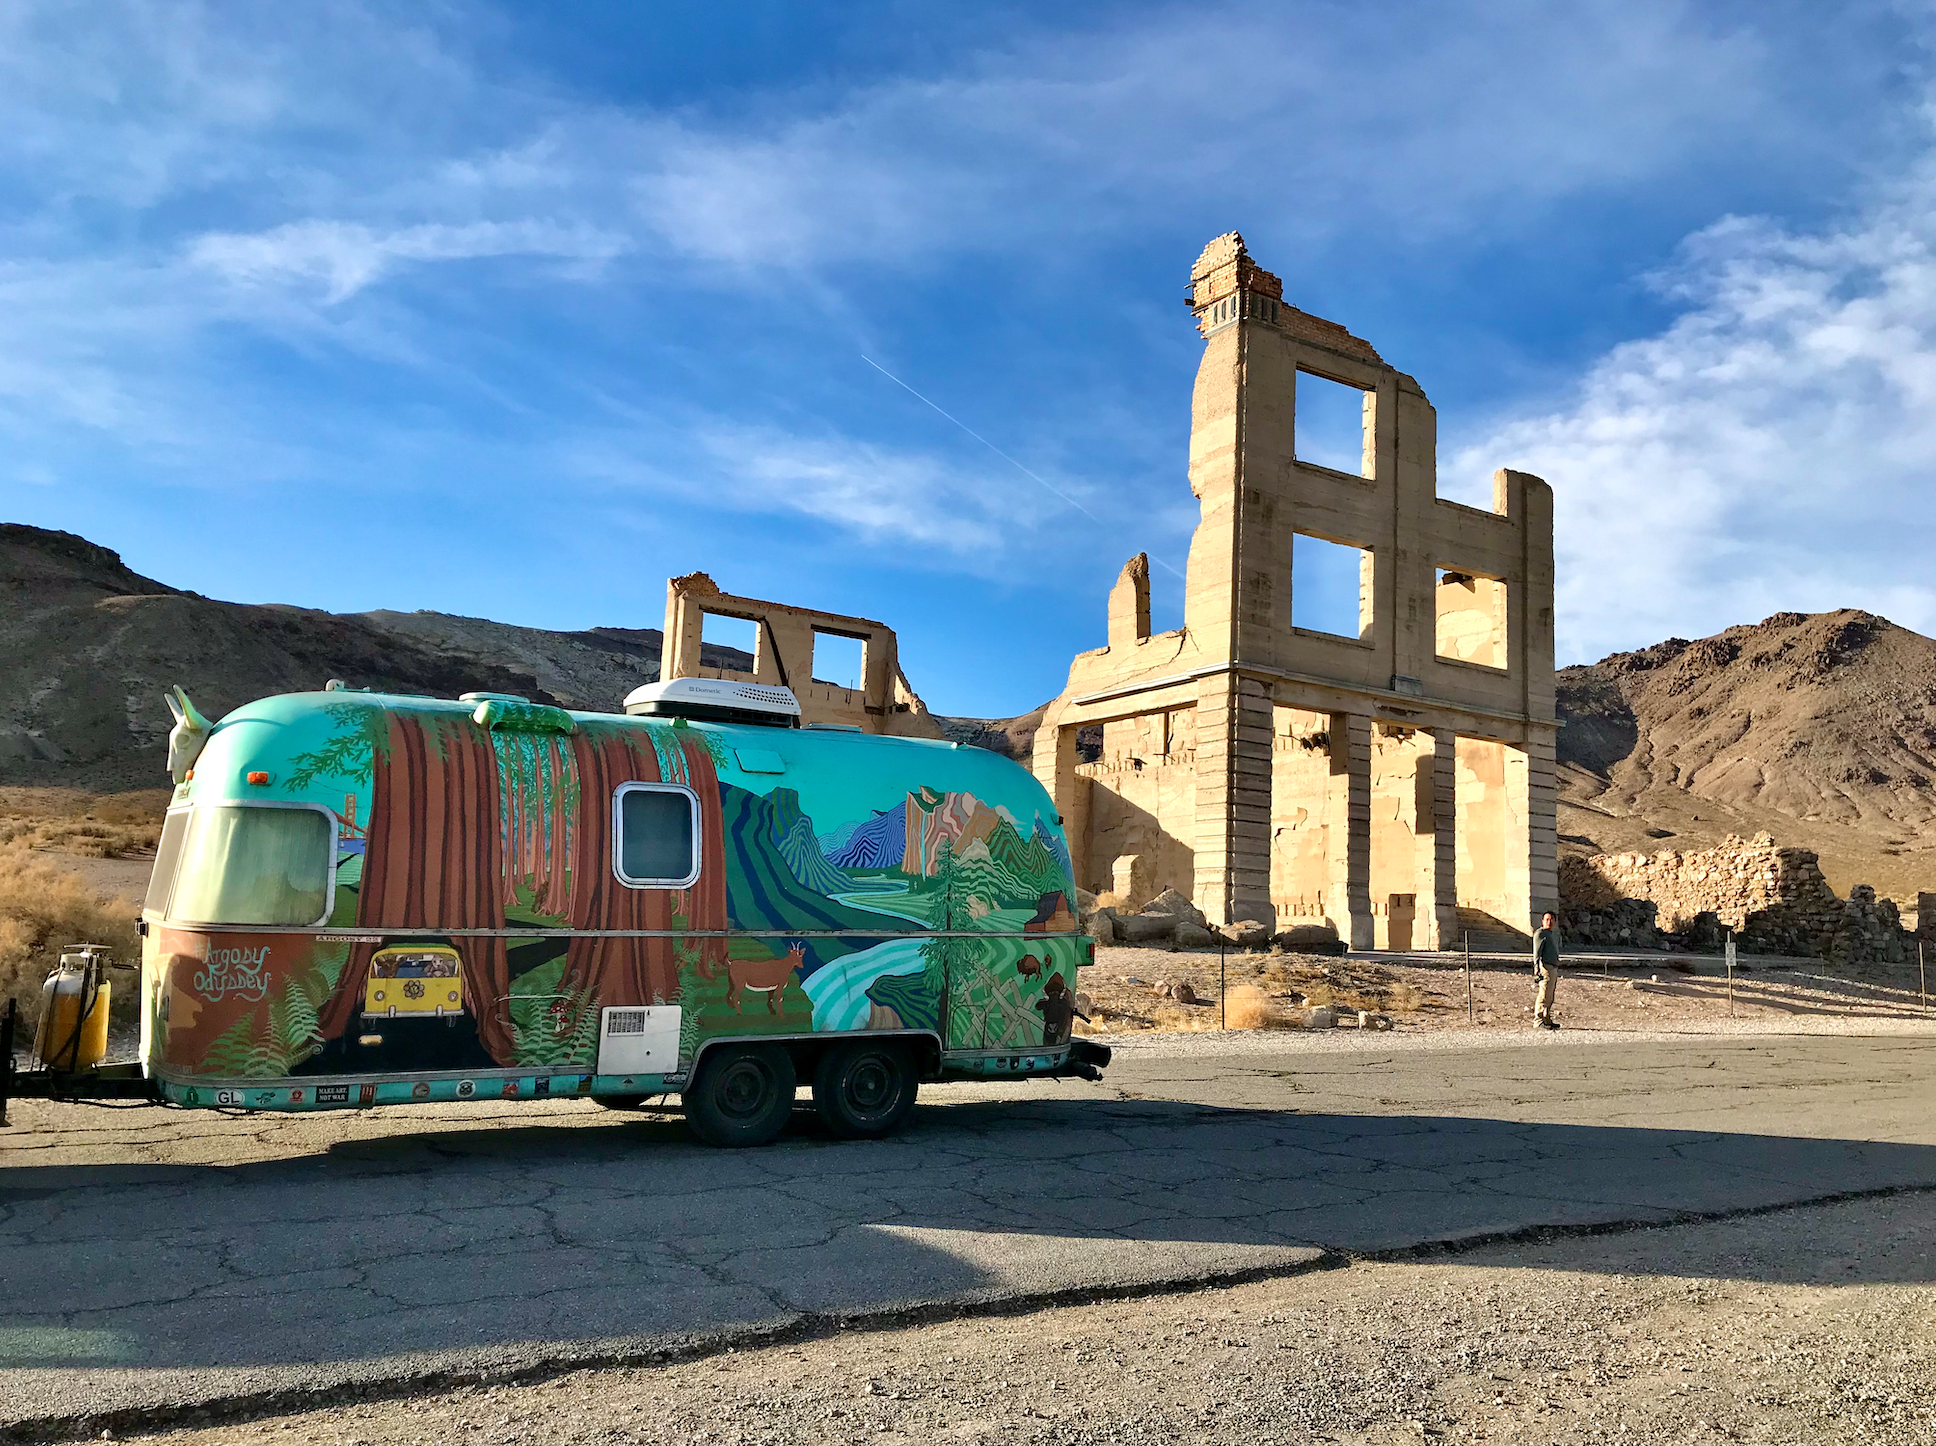 painted airstream in front of Cook Bank, the tallest building in Rhyolite.